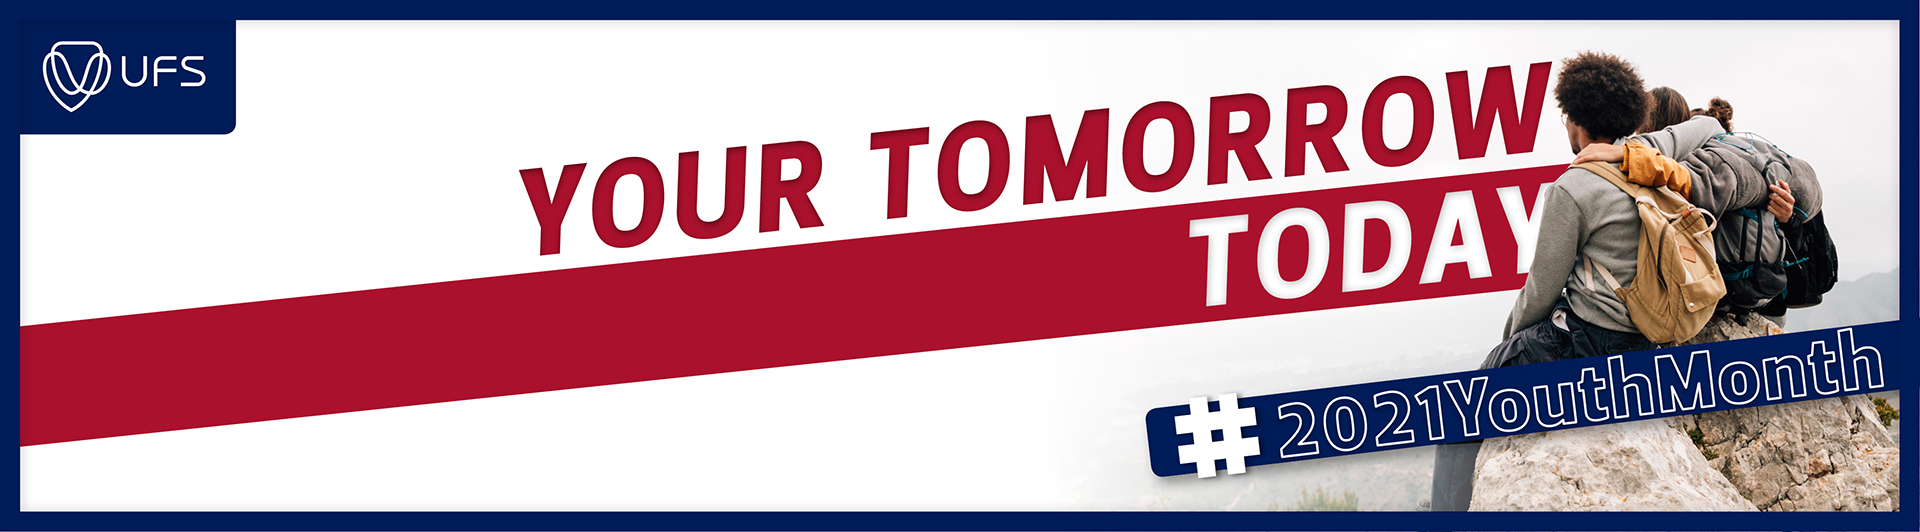 Youth Month - Your Tomorrow, Today